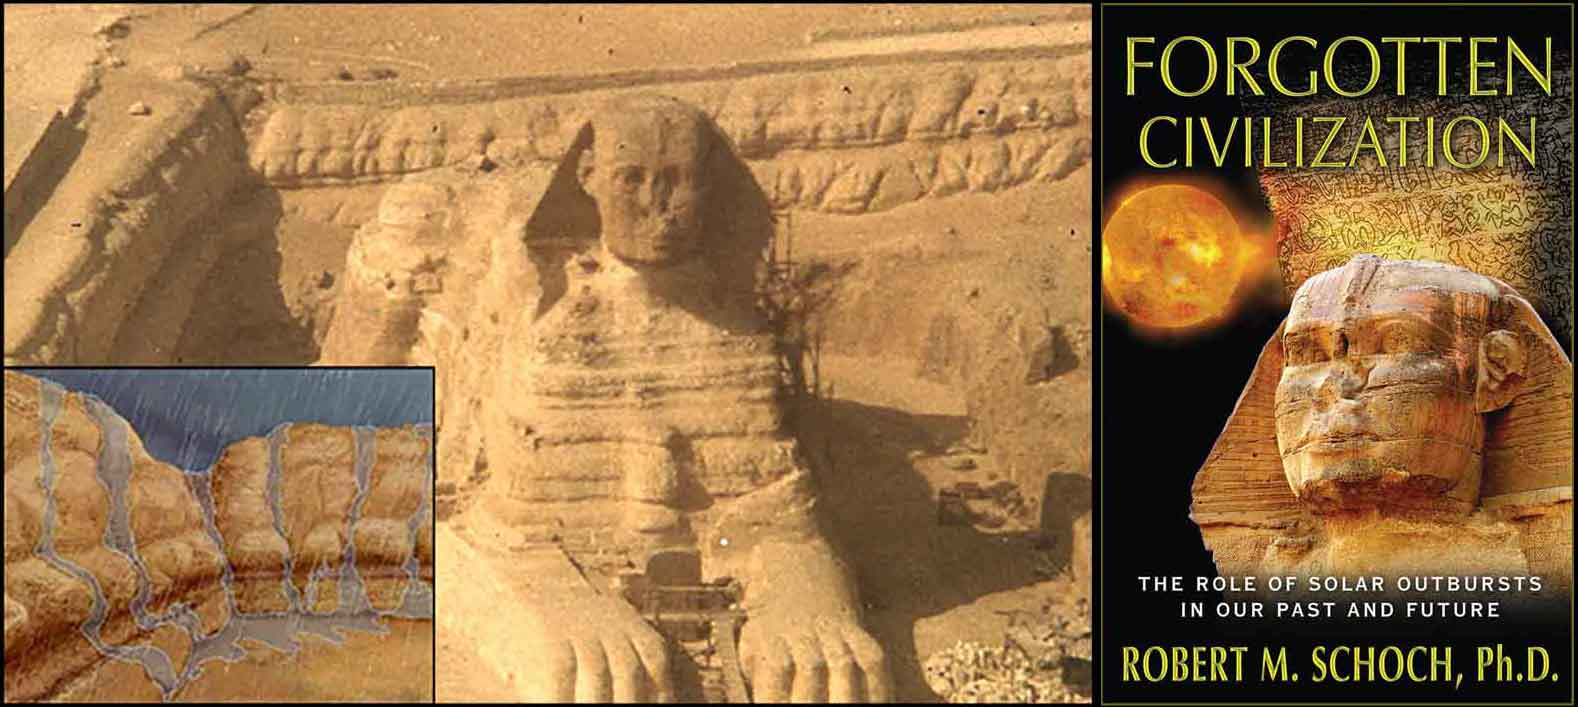 A combined image of the Great Sphinx and cover of Dr. Schoch's book, Forgotten Civilization